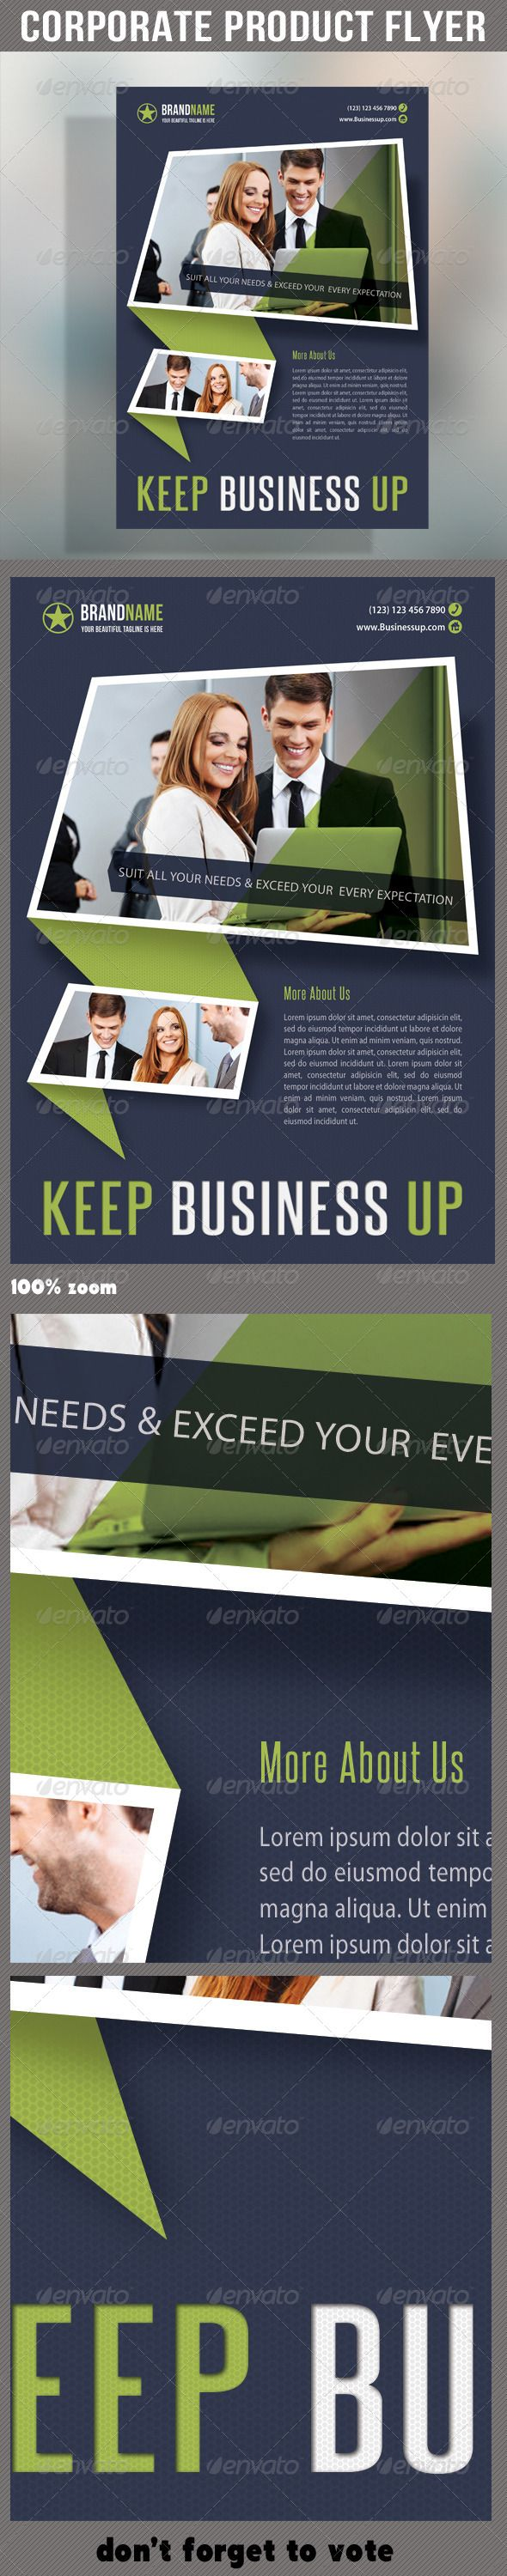 corporate product flyer flyer template adobe and psd flyer corporate product flyer 52 graphicriver pack included psd flyer template a5 210times